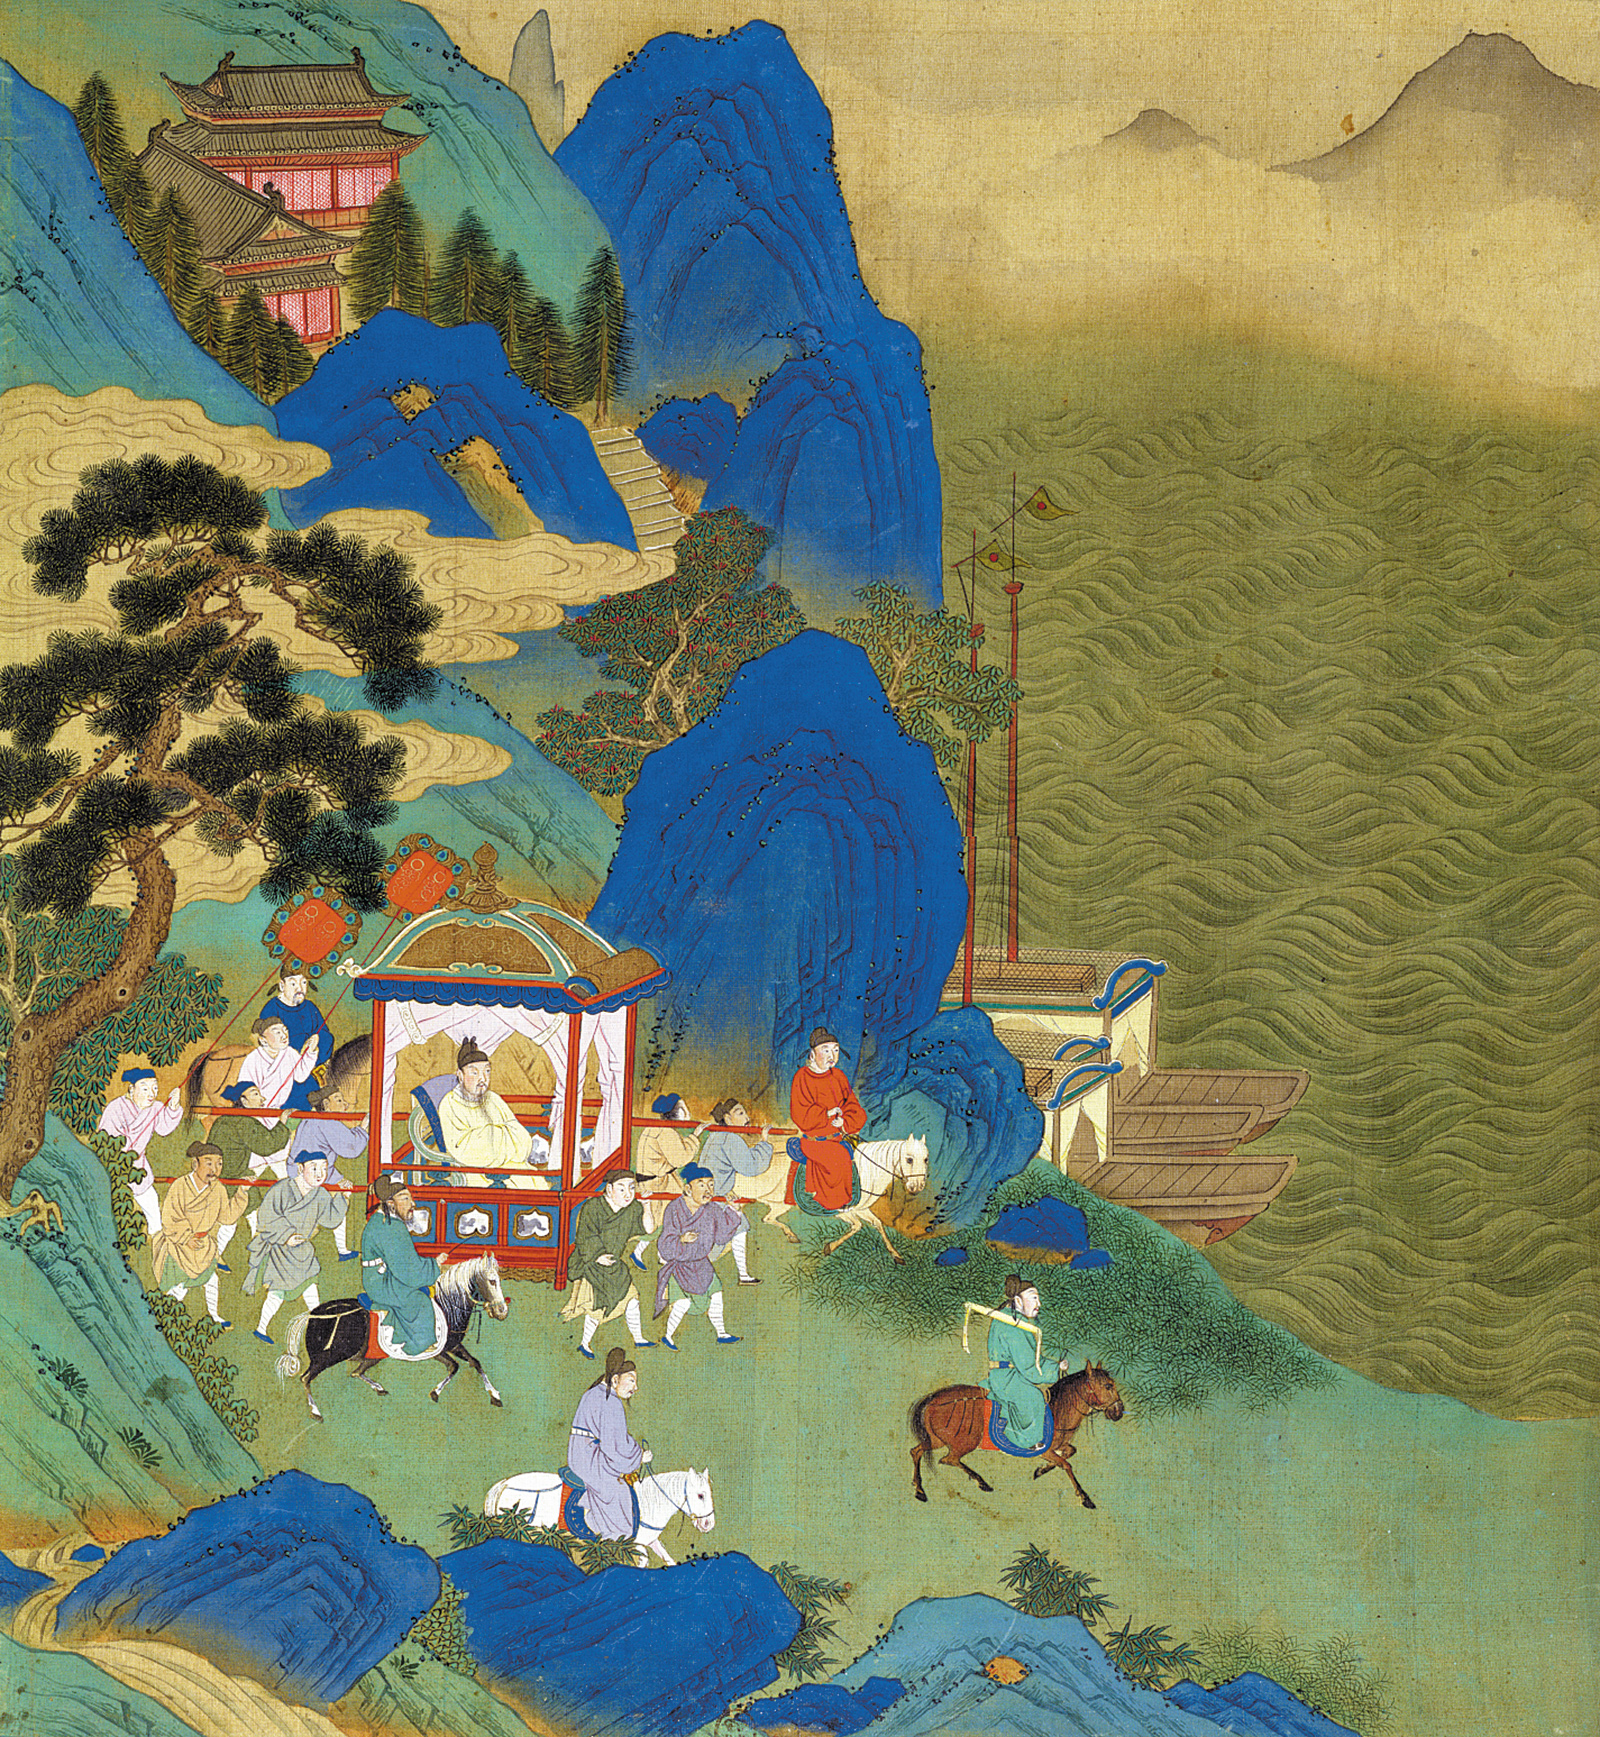 'Emperor Qin Shi Huang traveling in a palanquin,' late third century BCE; eighteenth-century painting from The History of the Lives of the Chinese Emperors